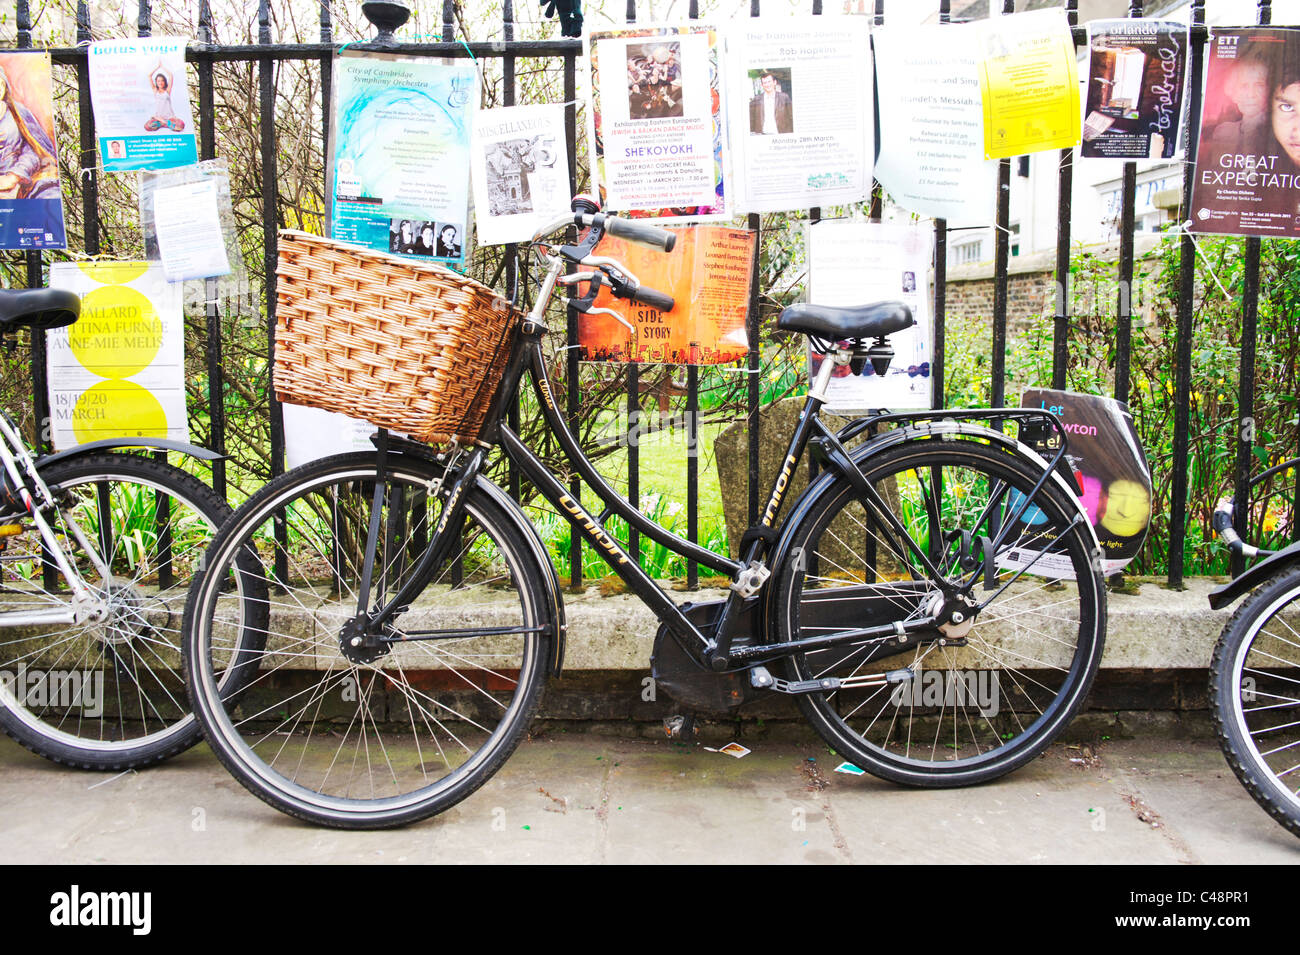 retro bicycle chained to metal rail fence in a cambridge city centre, surrounded by notices and posters - Stock Image